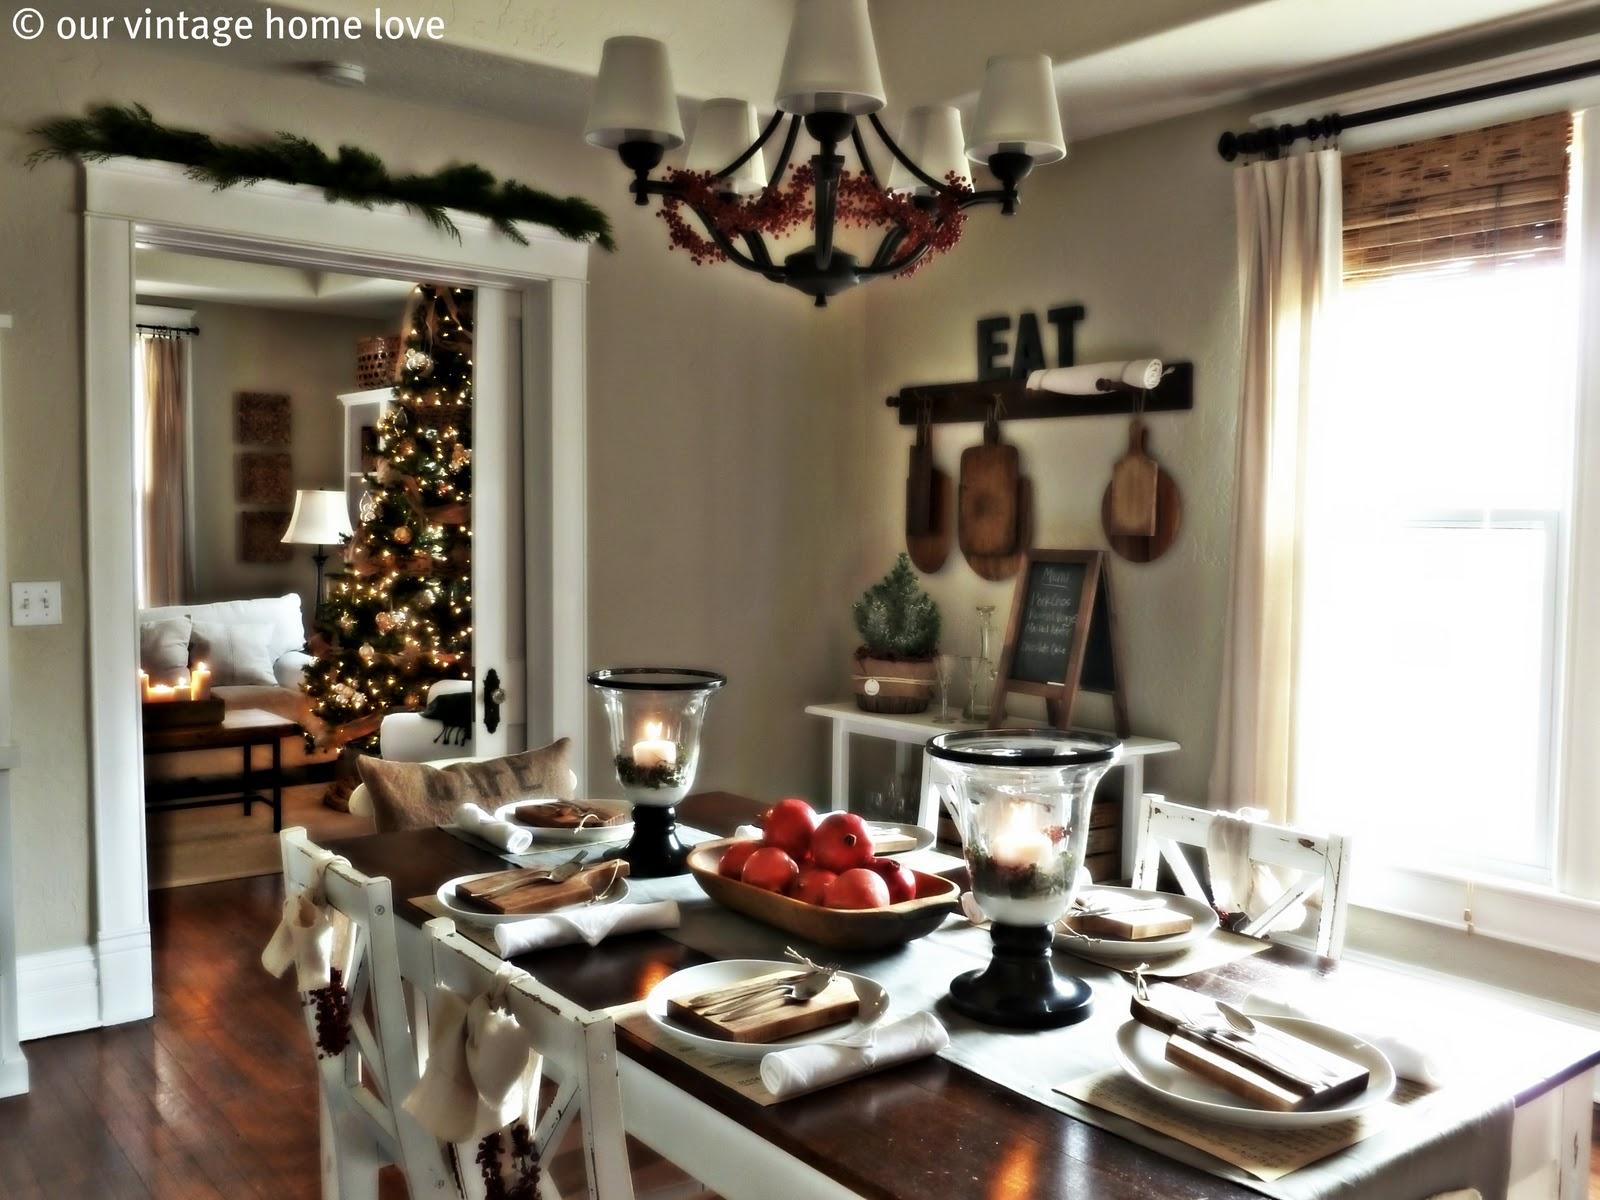 our vintage home love: Christmas Table Decor Ideas